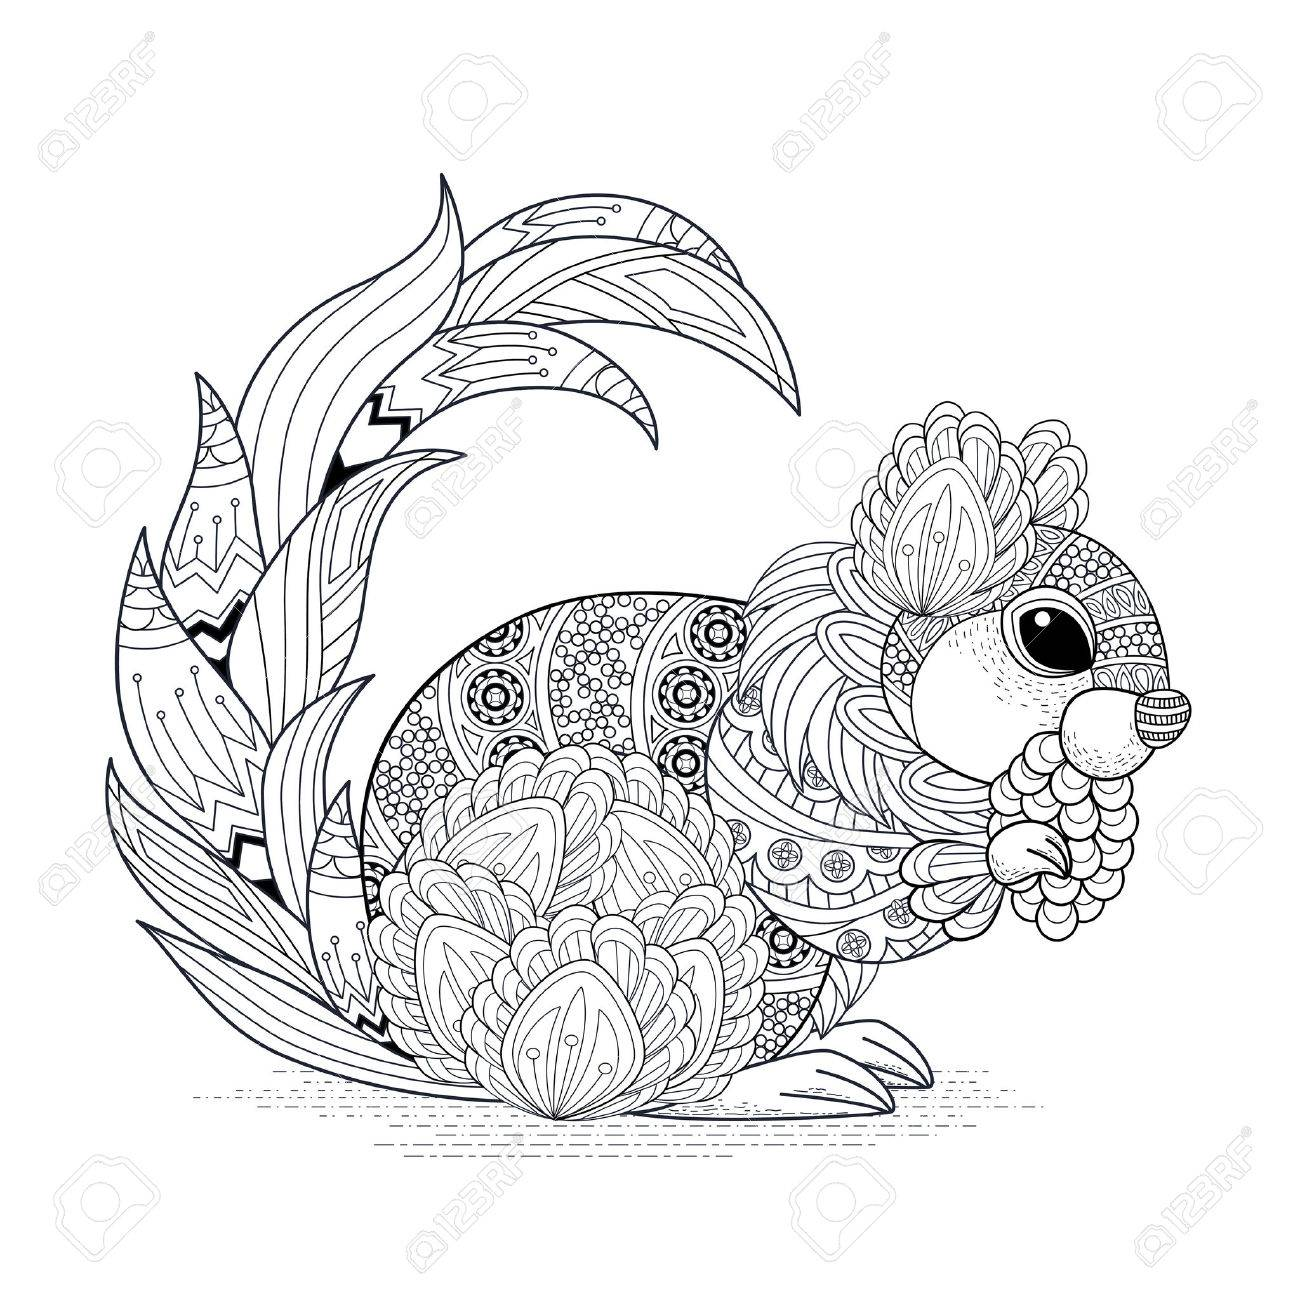 Lovely Squirrel Coloring Page In Exquisite Style Royalty Free